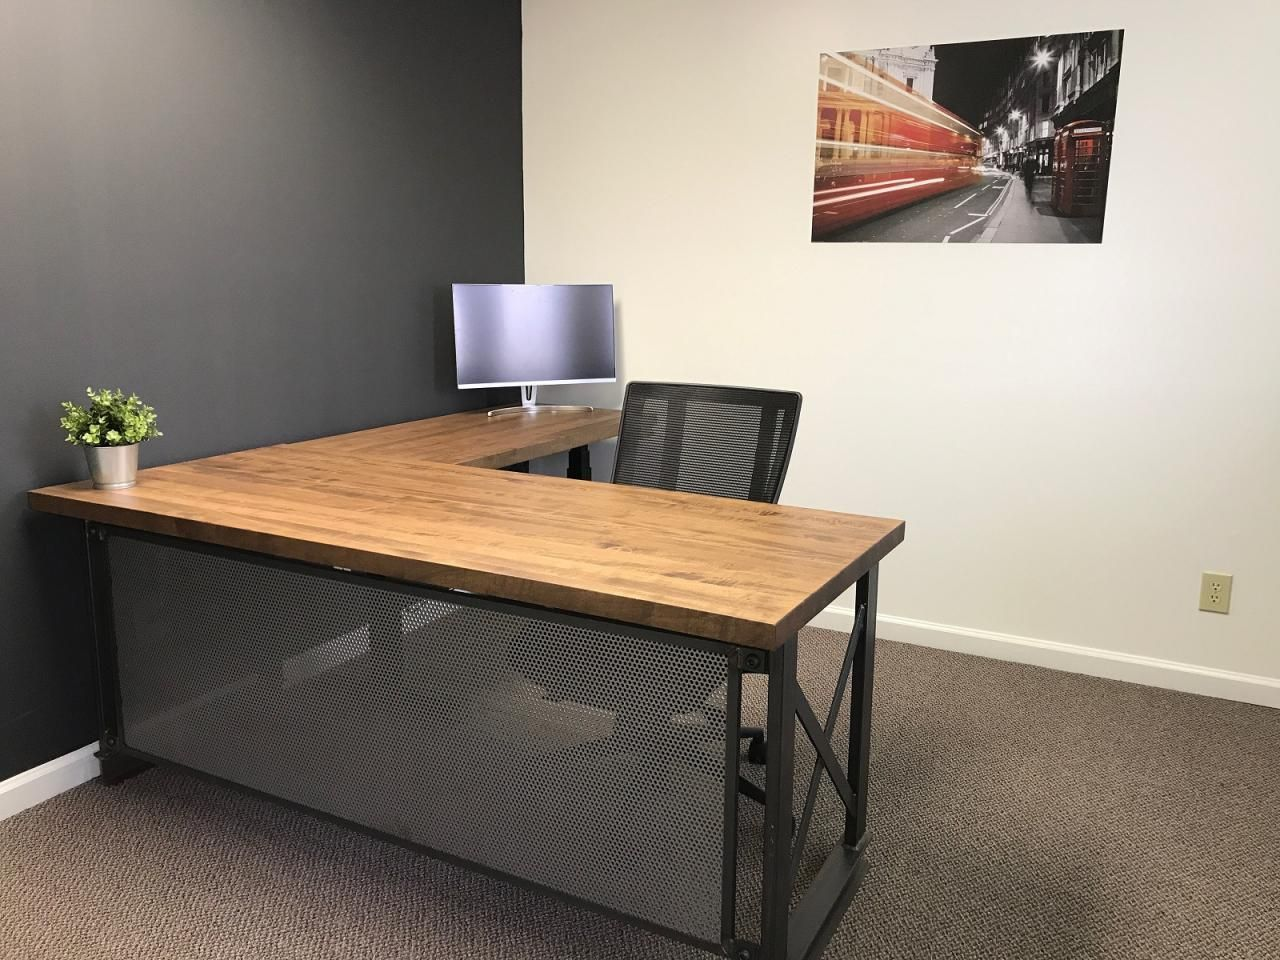 Executive Carruca Office Desk Lshape Image 0 Small Office Furniture Industrial Office Furniture Vintage Industrial Dining Table